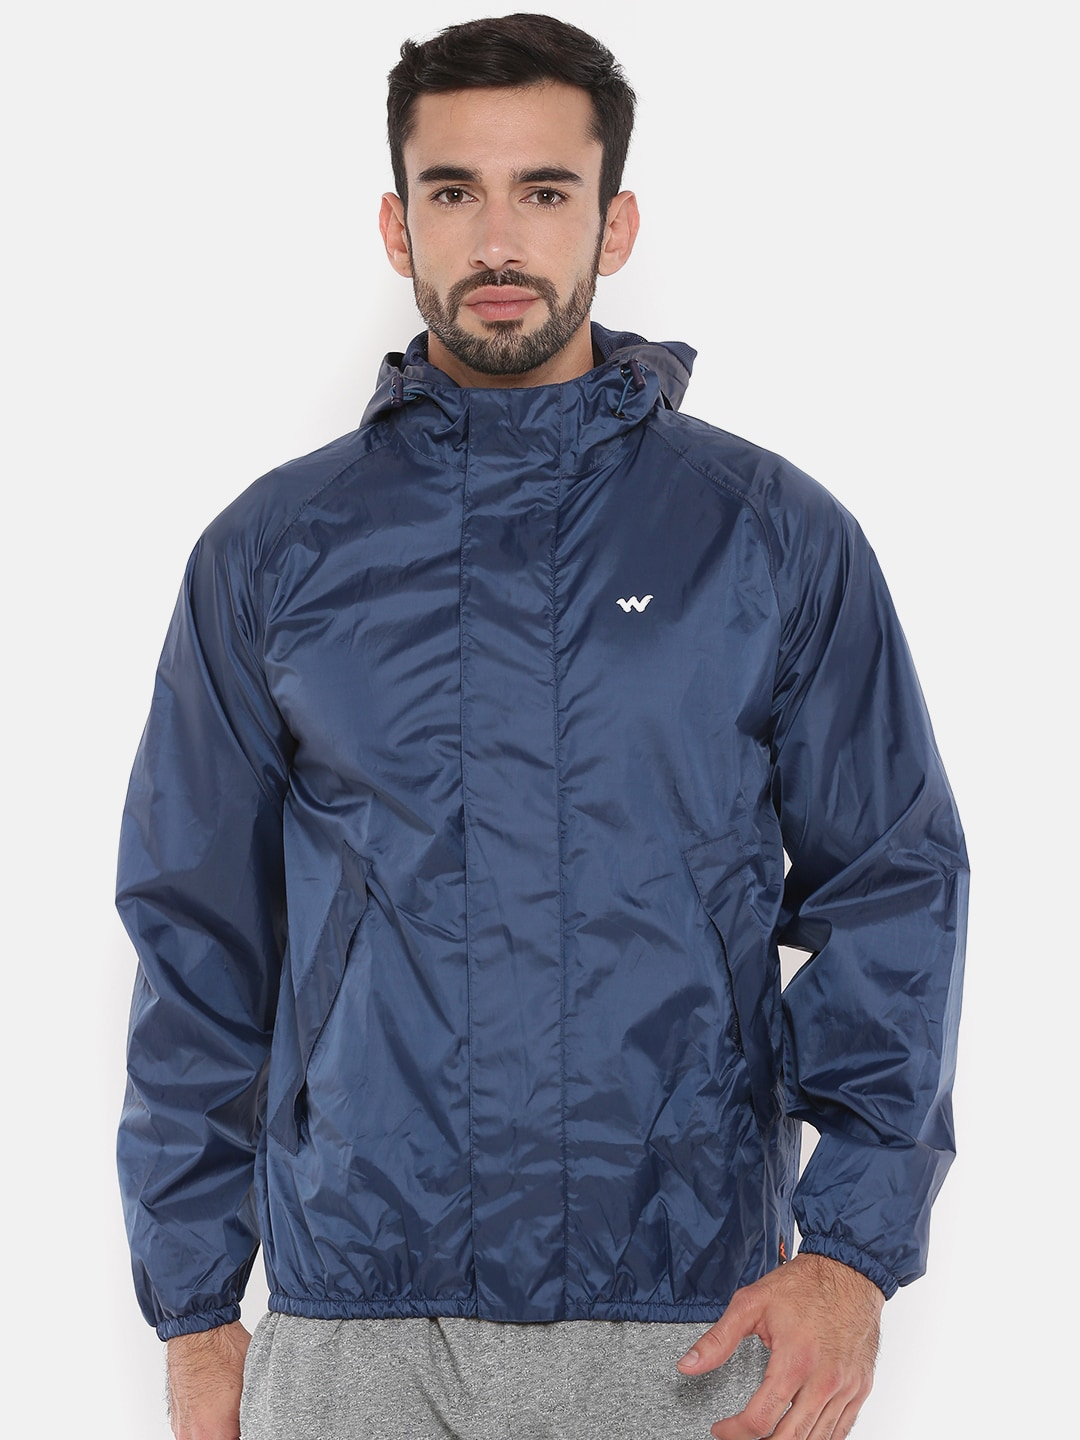 34edc90c0 Wildcraft Men Navy Blue Solid Waterproof Hooded Rain Jacket